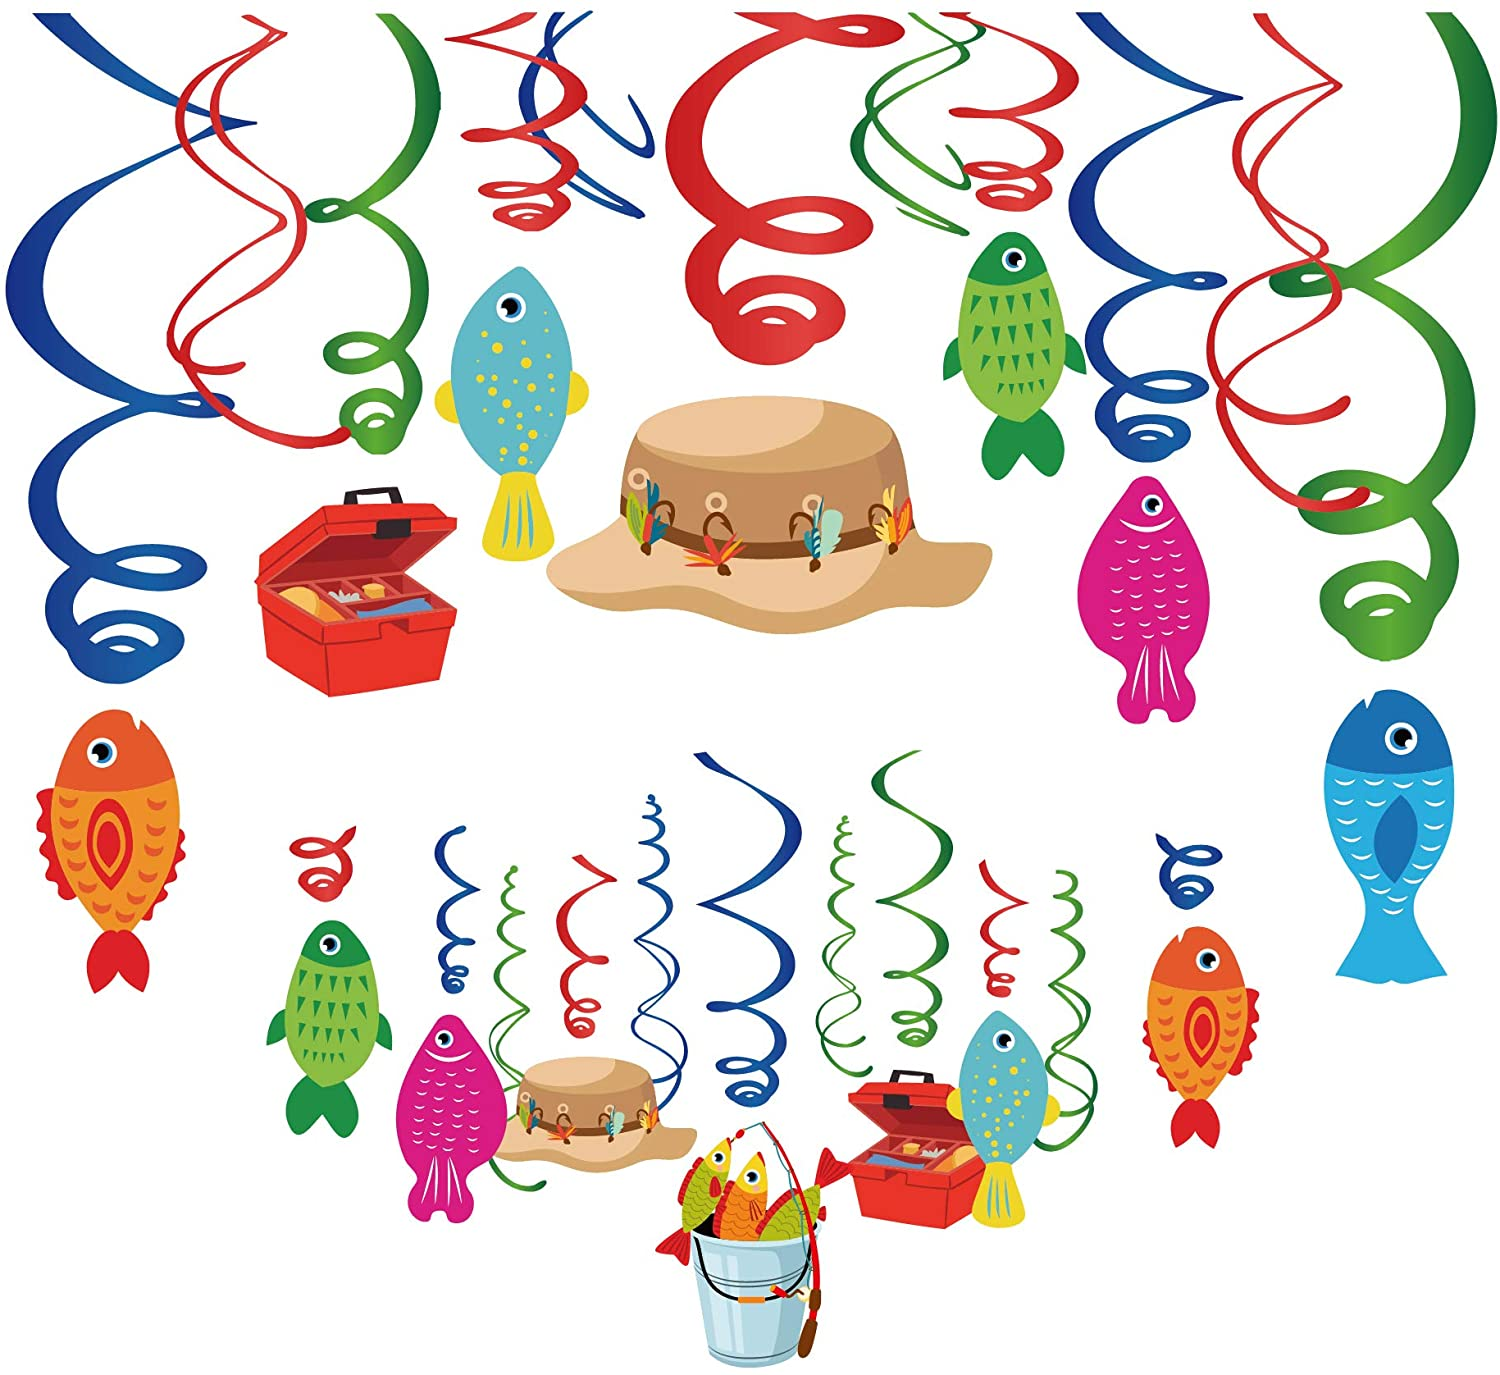 30Ct Gone Fishing Hanging Swirl Decorations, Fishing Party Supplies,O-Fish-Ally Party Supplies, Little Fisherman Birthday Theme, The Big One for Girls,Boys,Kids,Home,Classroom,Baby Shower